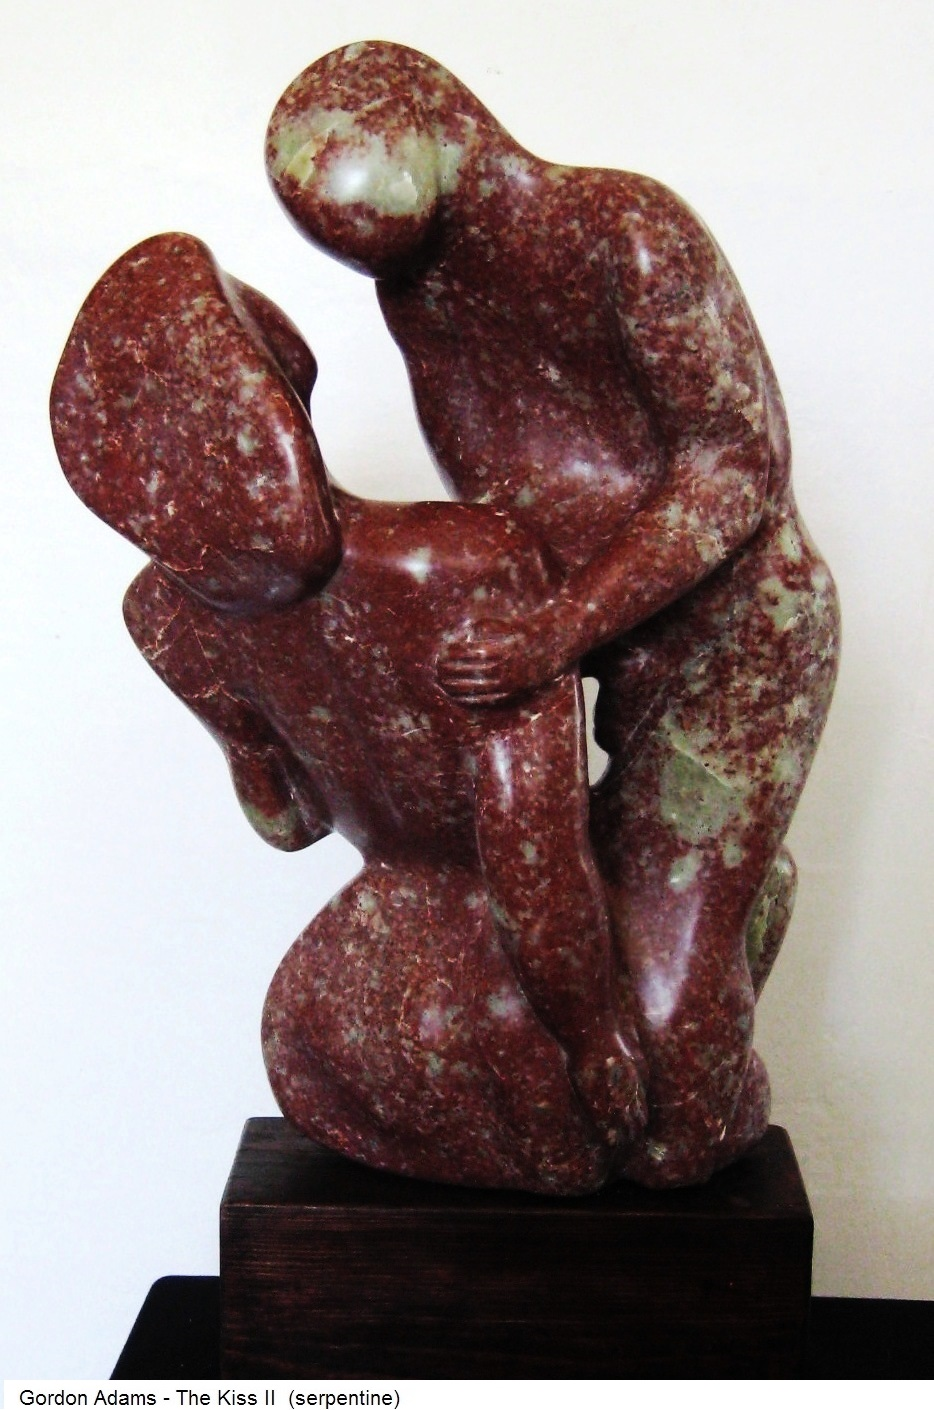 The Kiss II